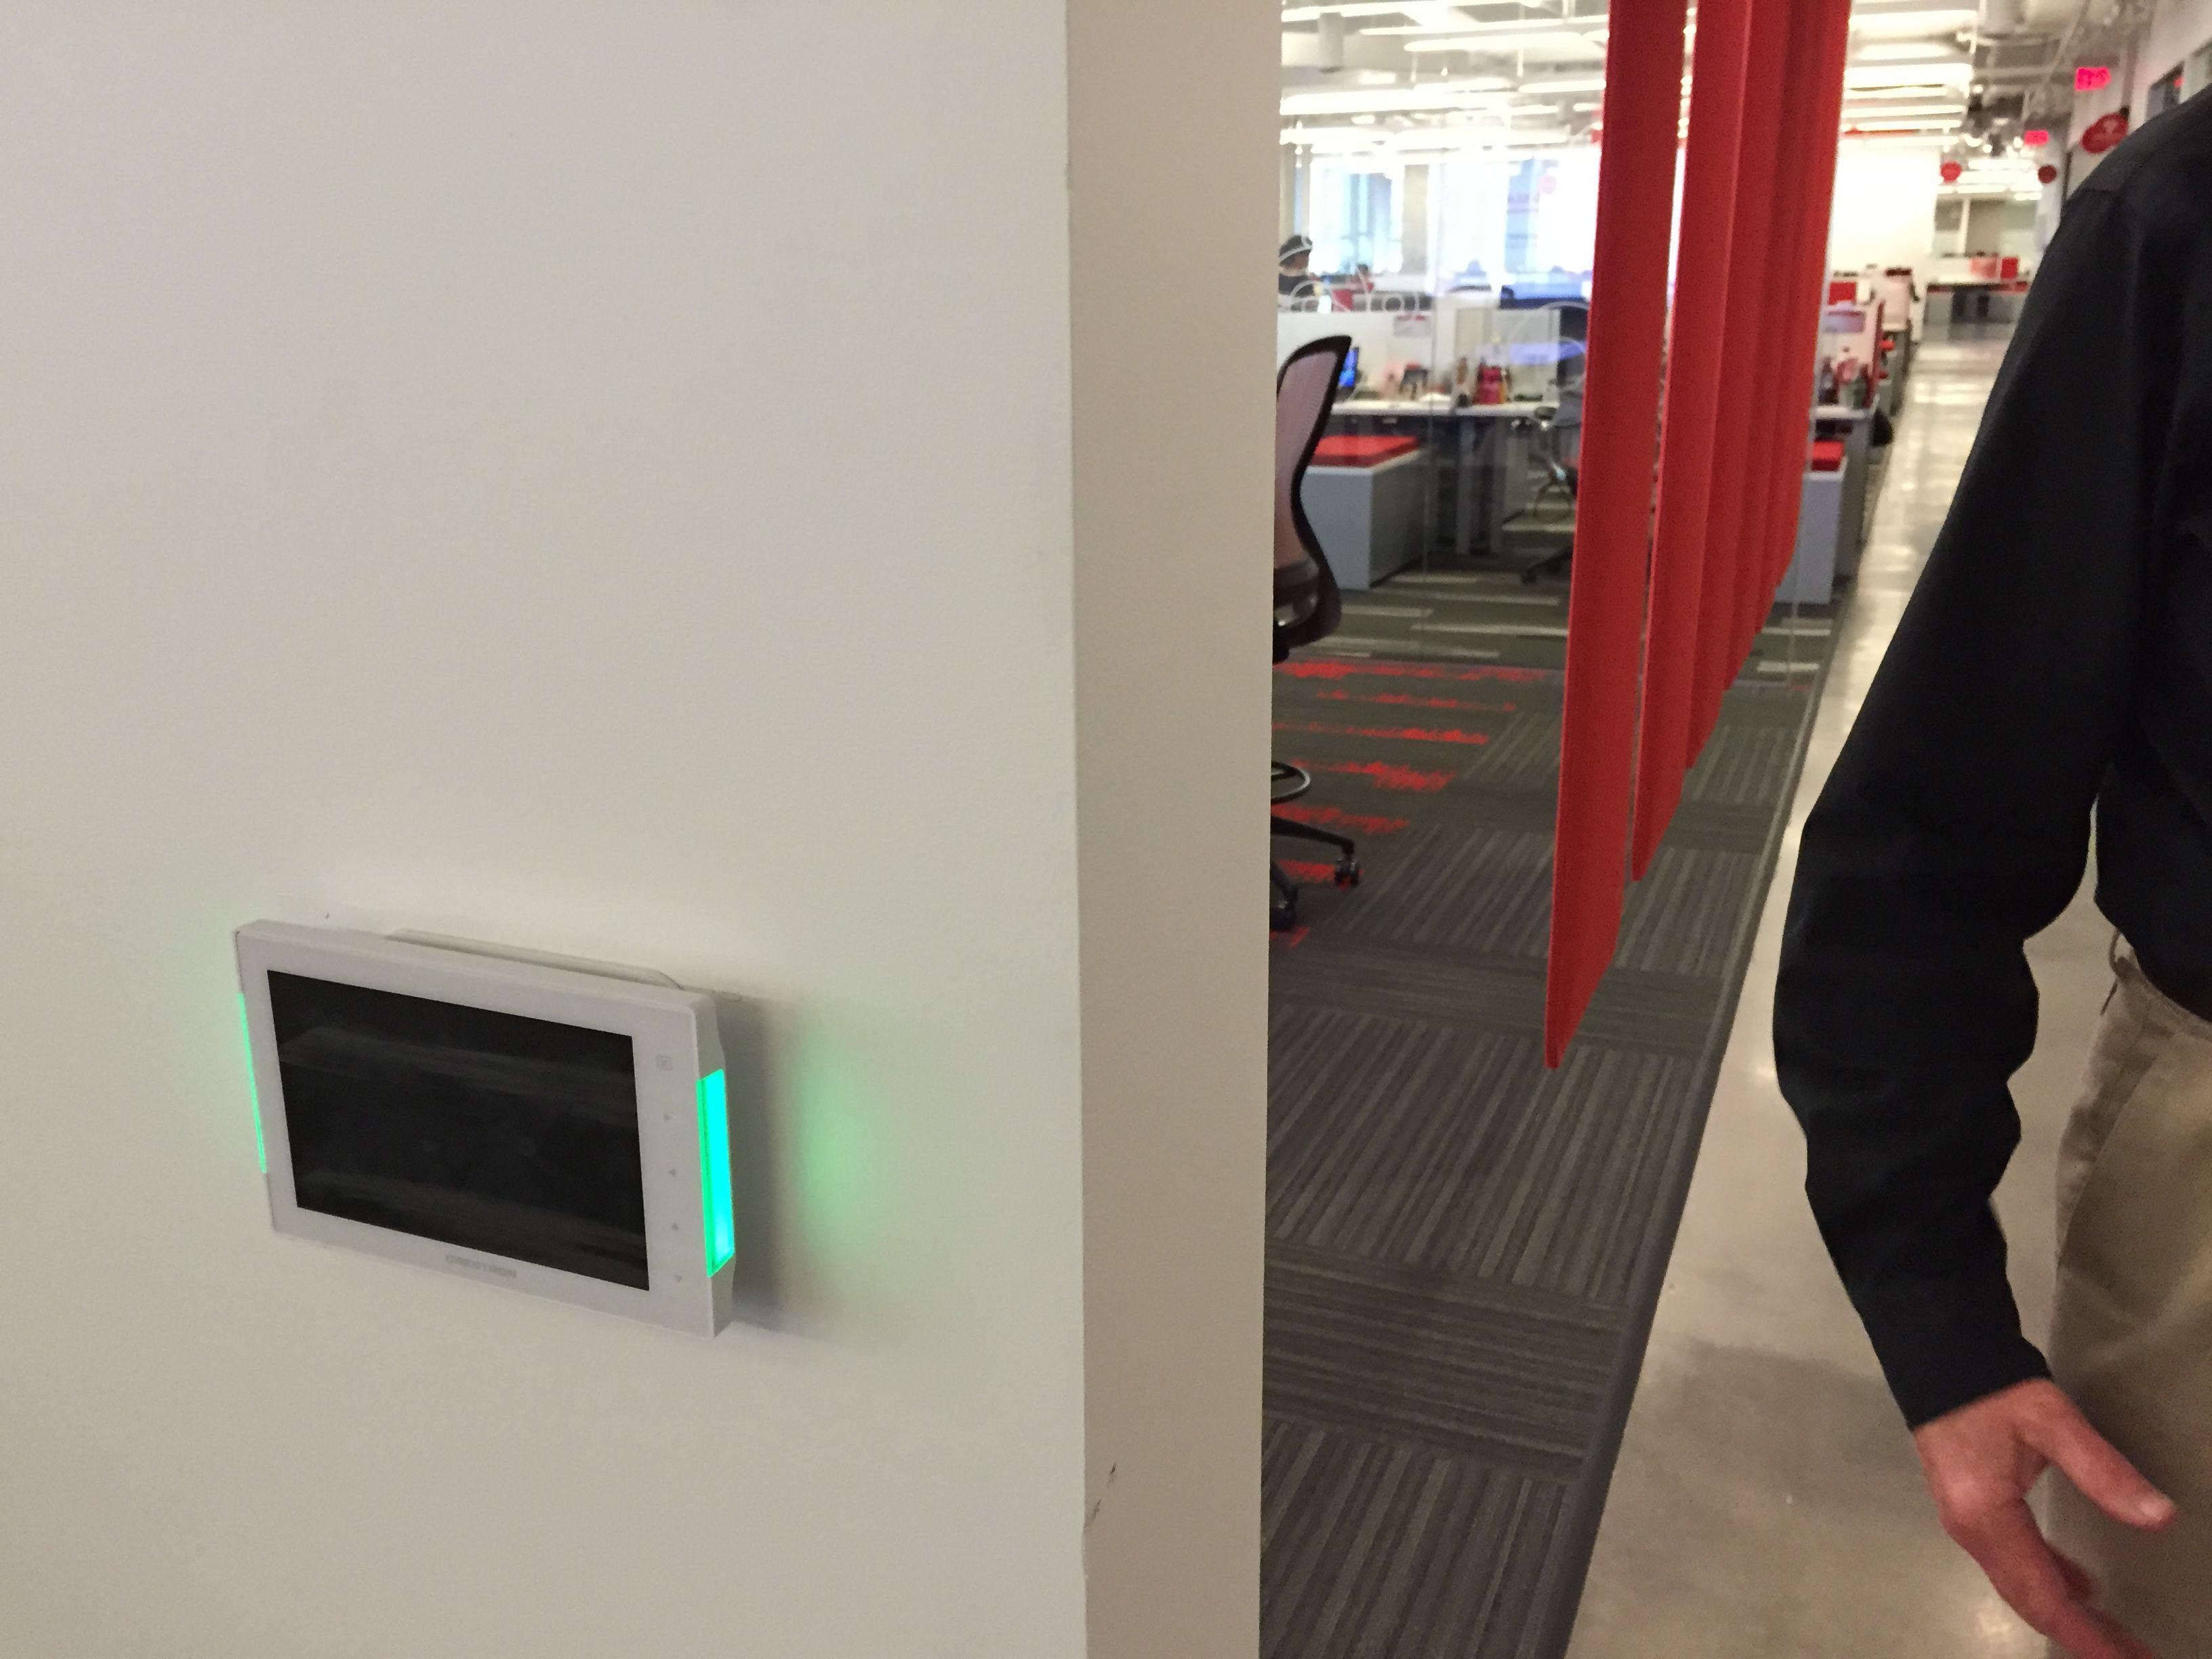 Crestron Wall Mounted Reservation System Panel System Showing If The Room Is Available Green Light Or Reserved Panel Systems Light Red Technical Innovation